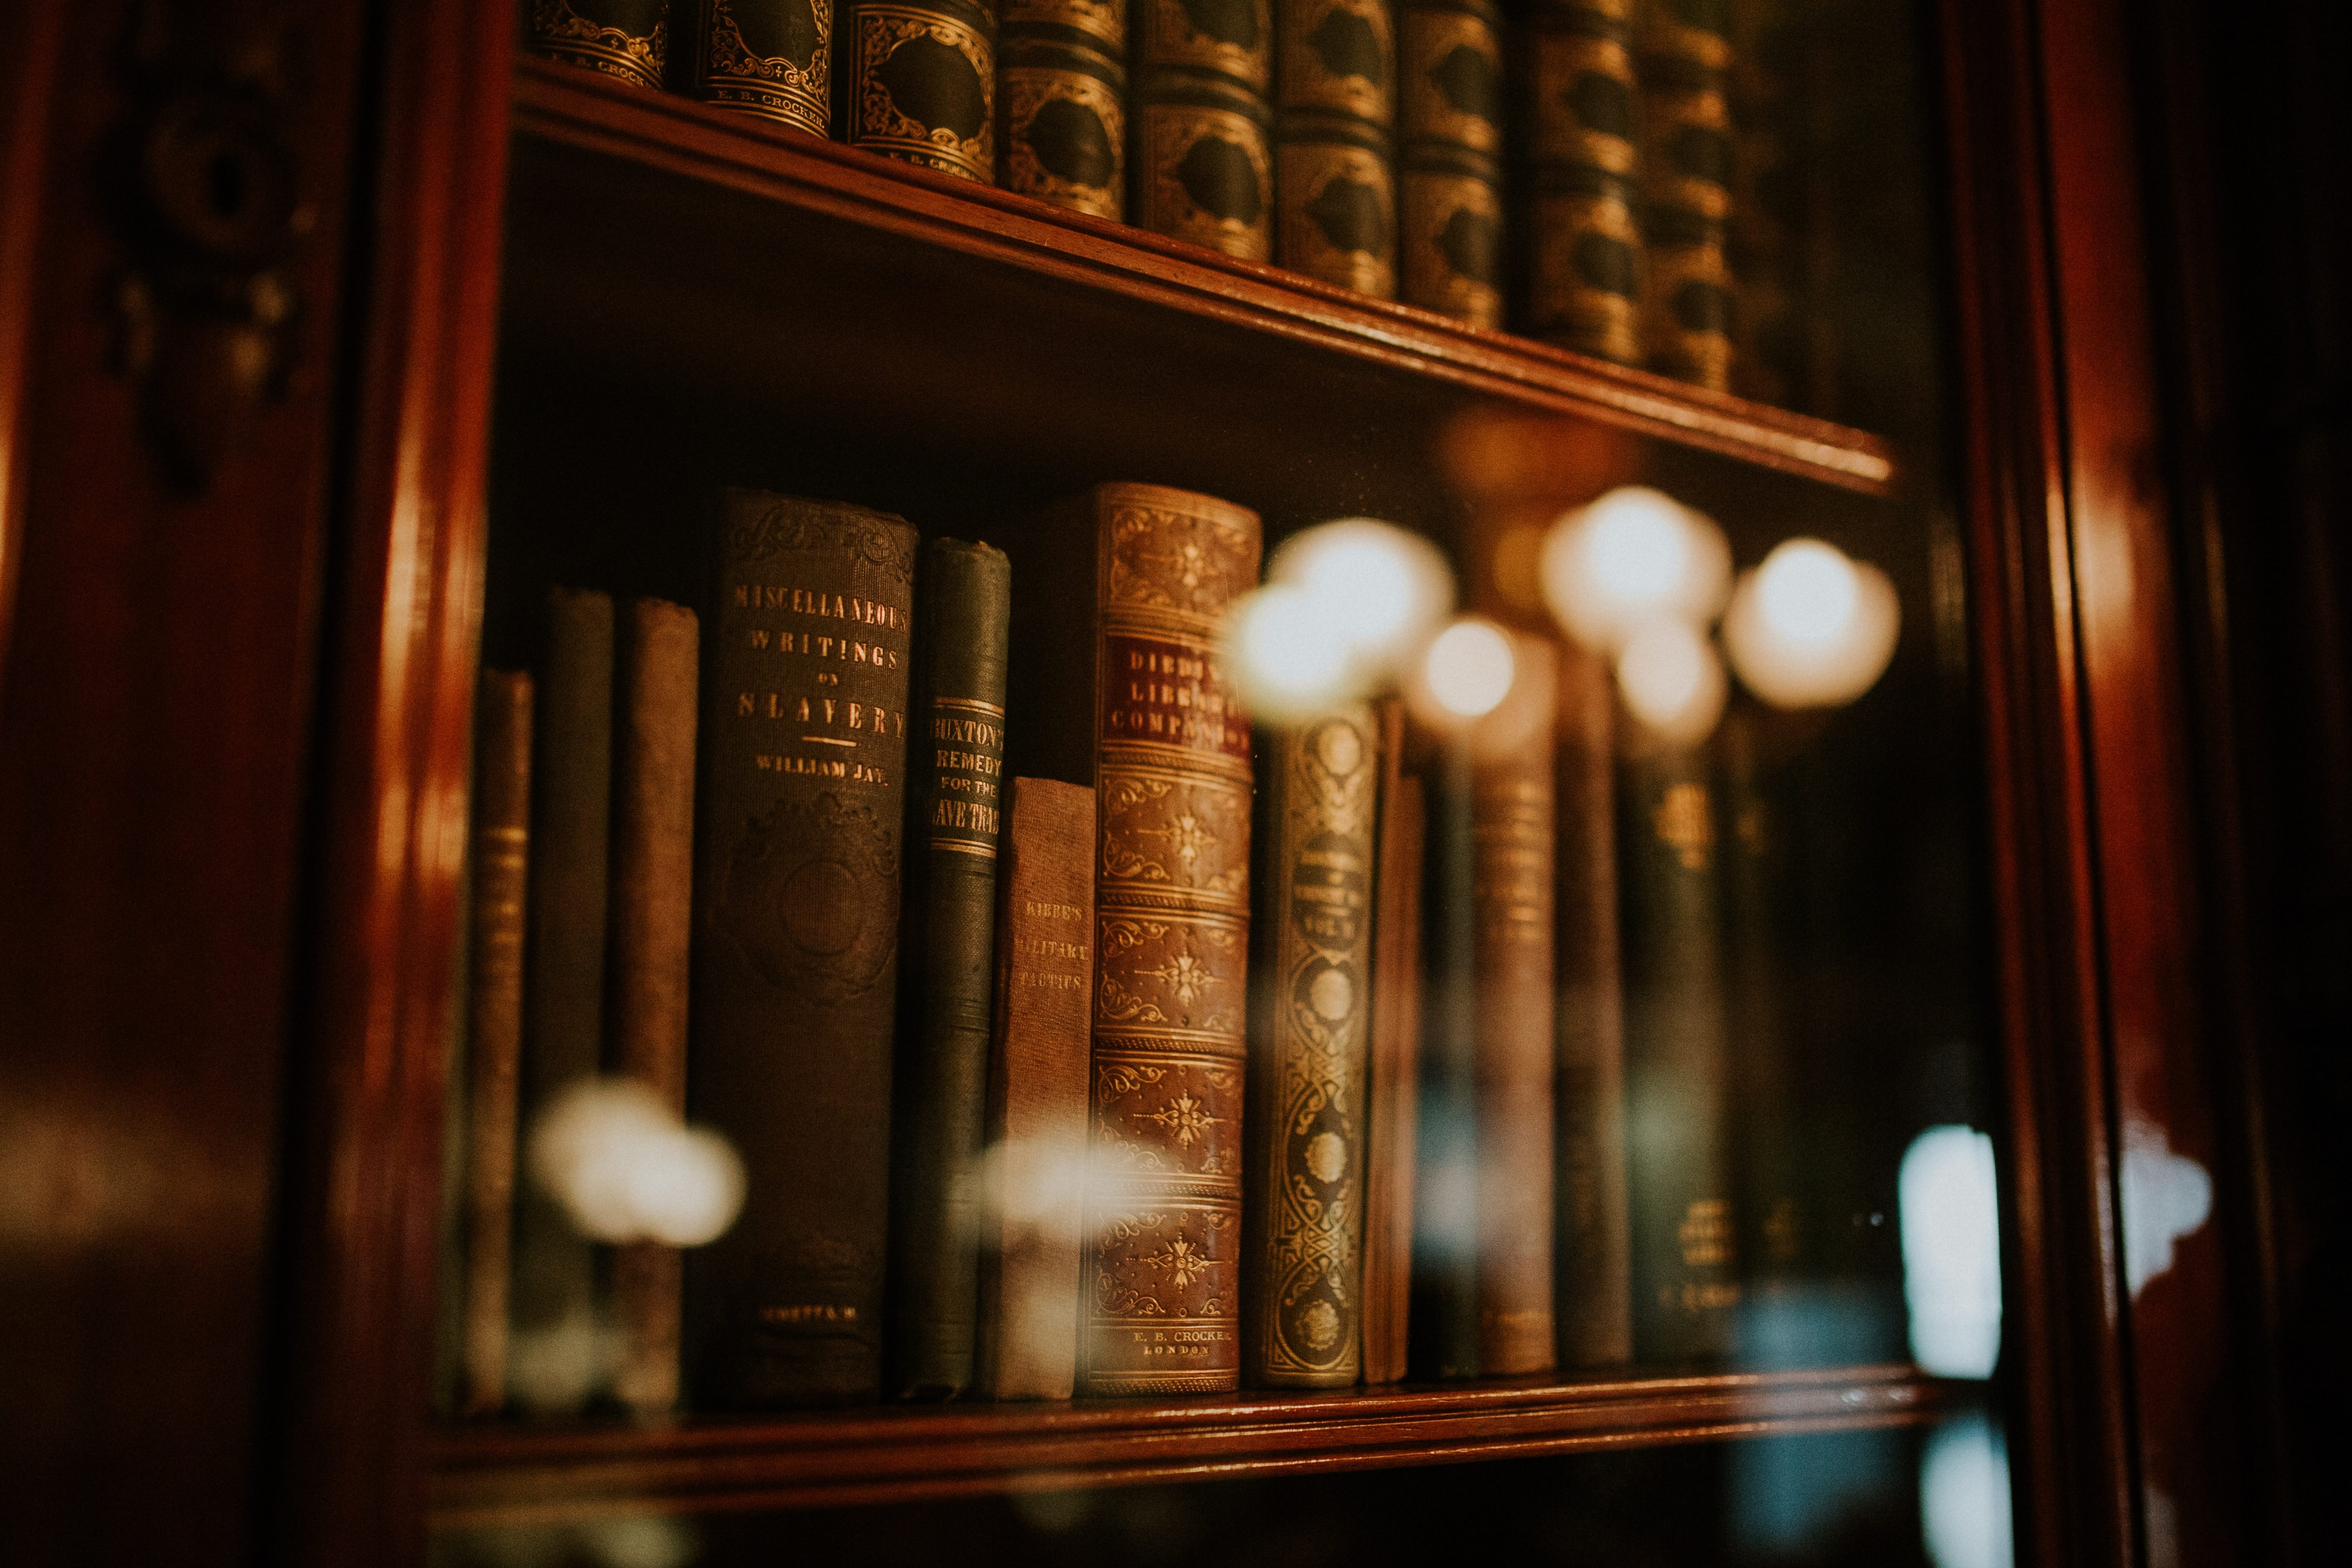 Books in bookcase with glass door; image by Clarisse Meyer, via Unsplash.com.